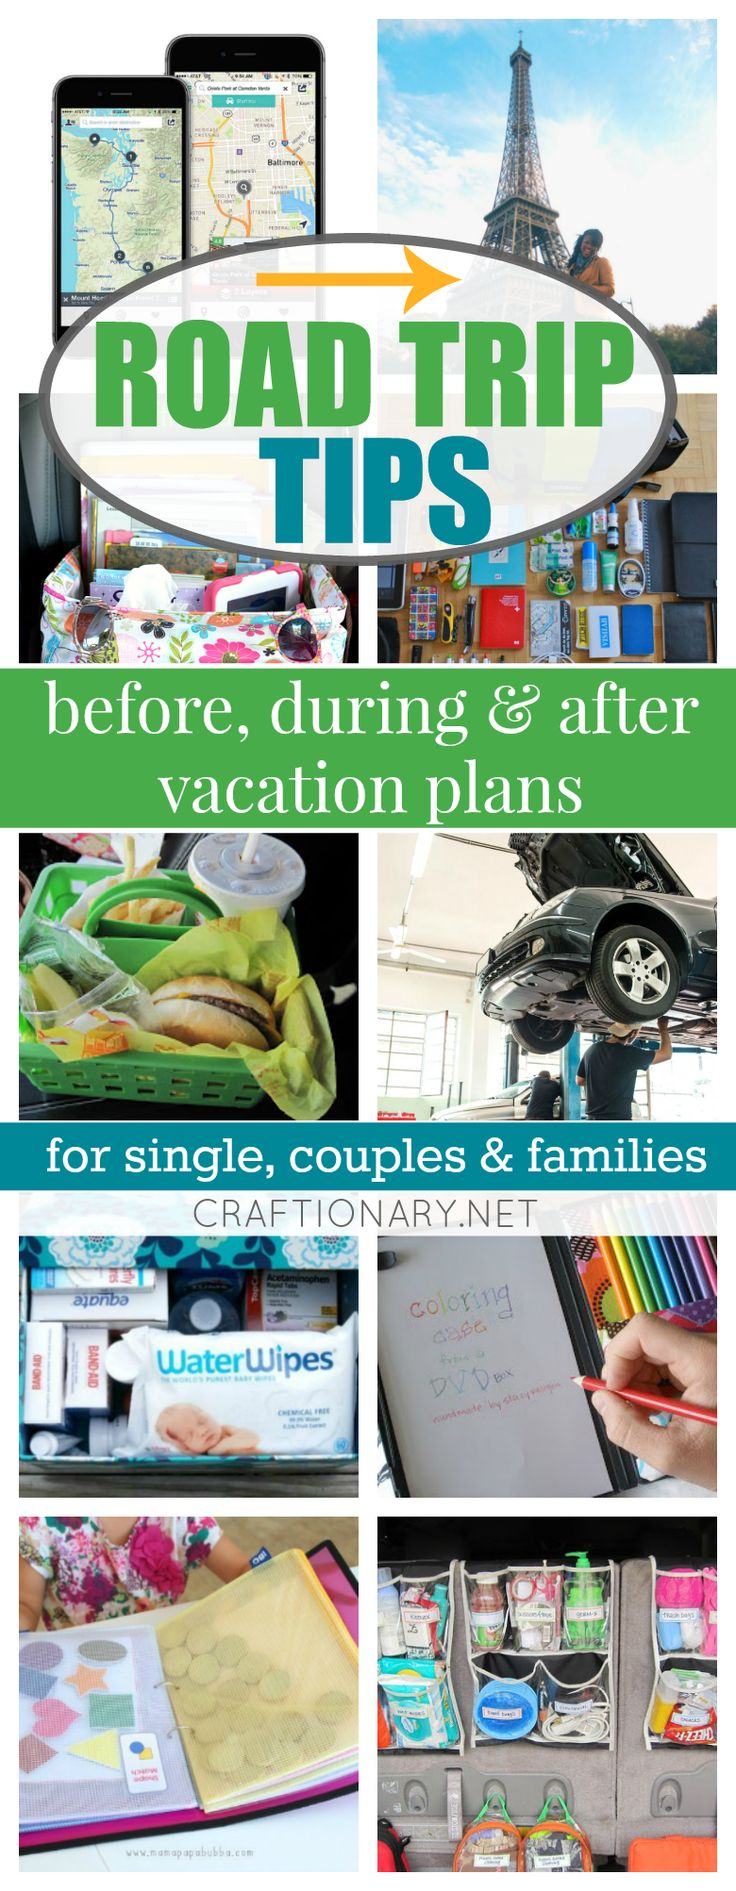 Make your road trip a fun filled, hastle free memory with these mind blowing road trip tips, tricks & hacks. Best ideas for planning an organized vacation.